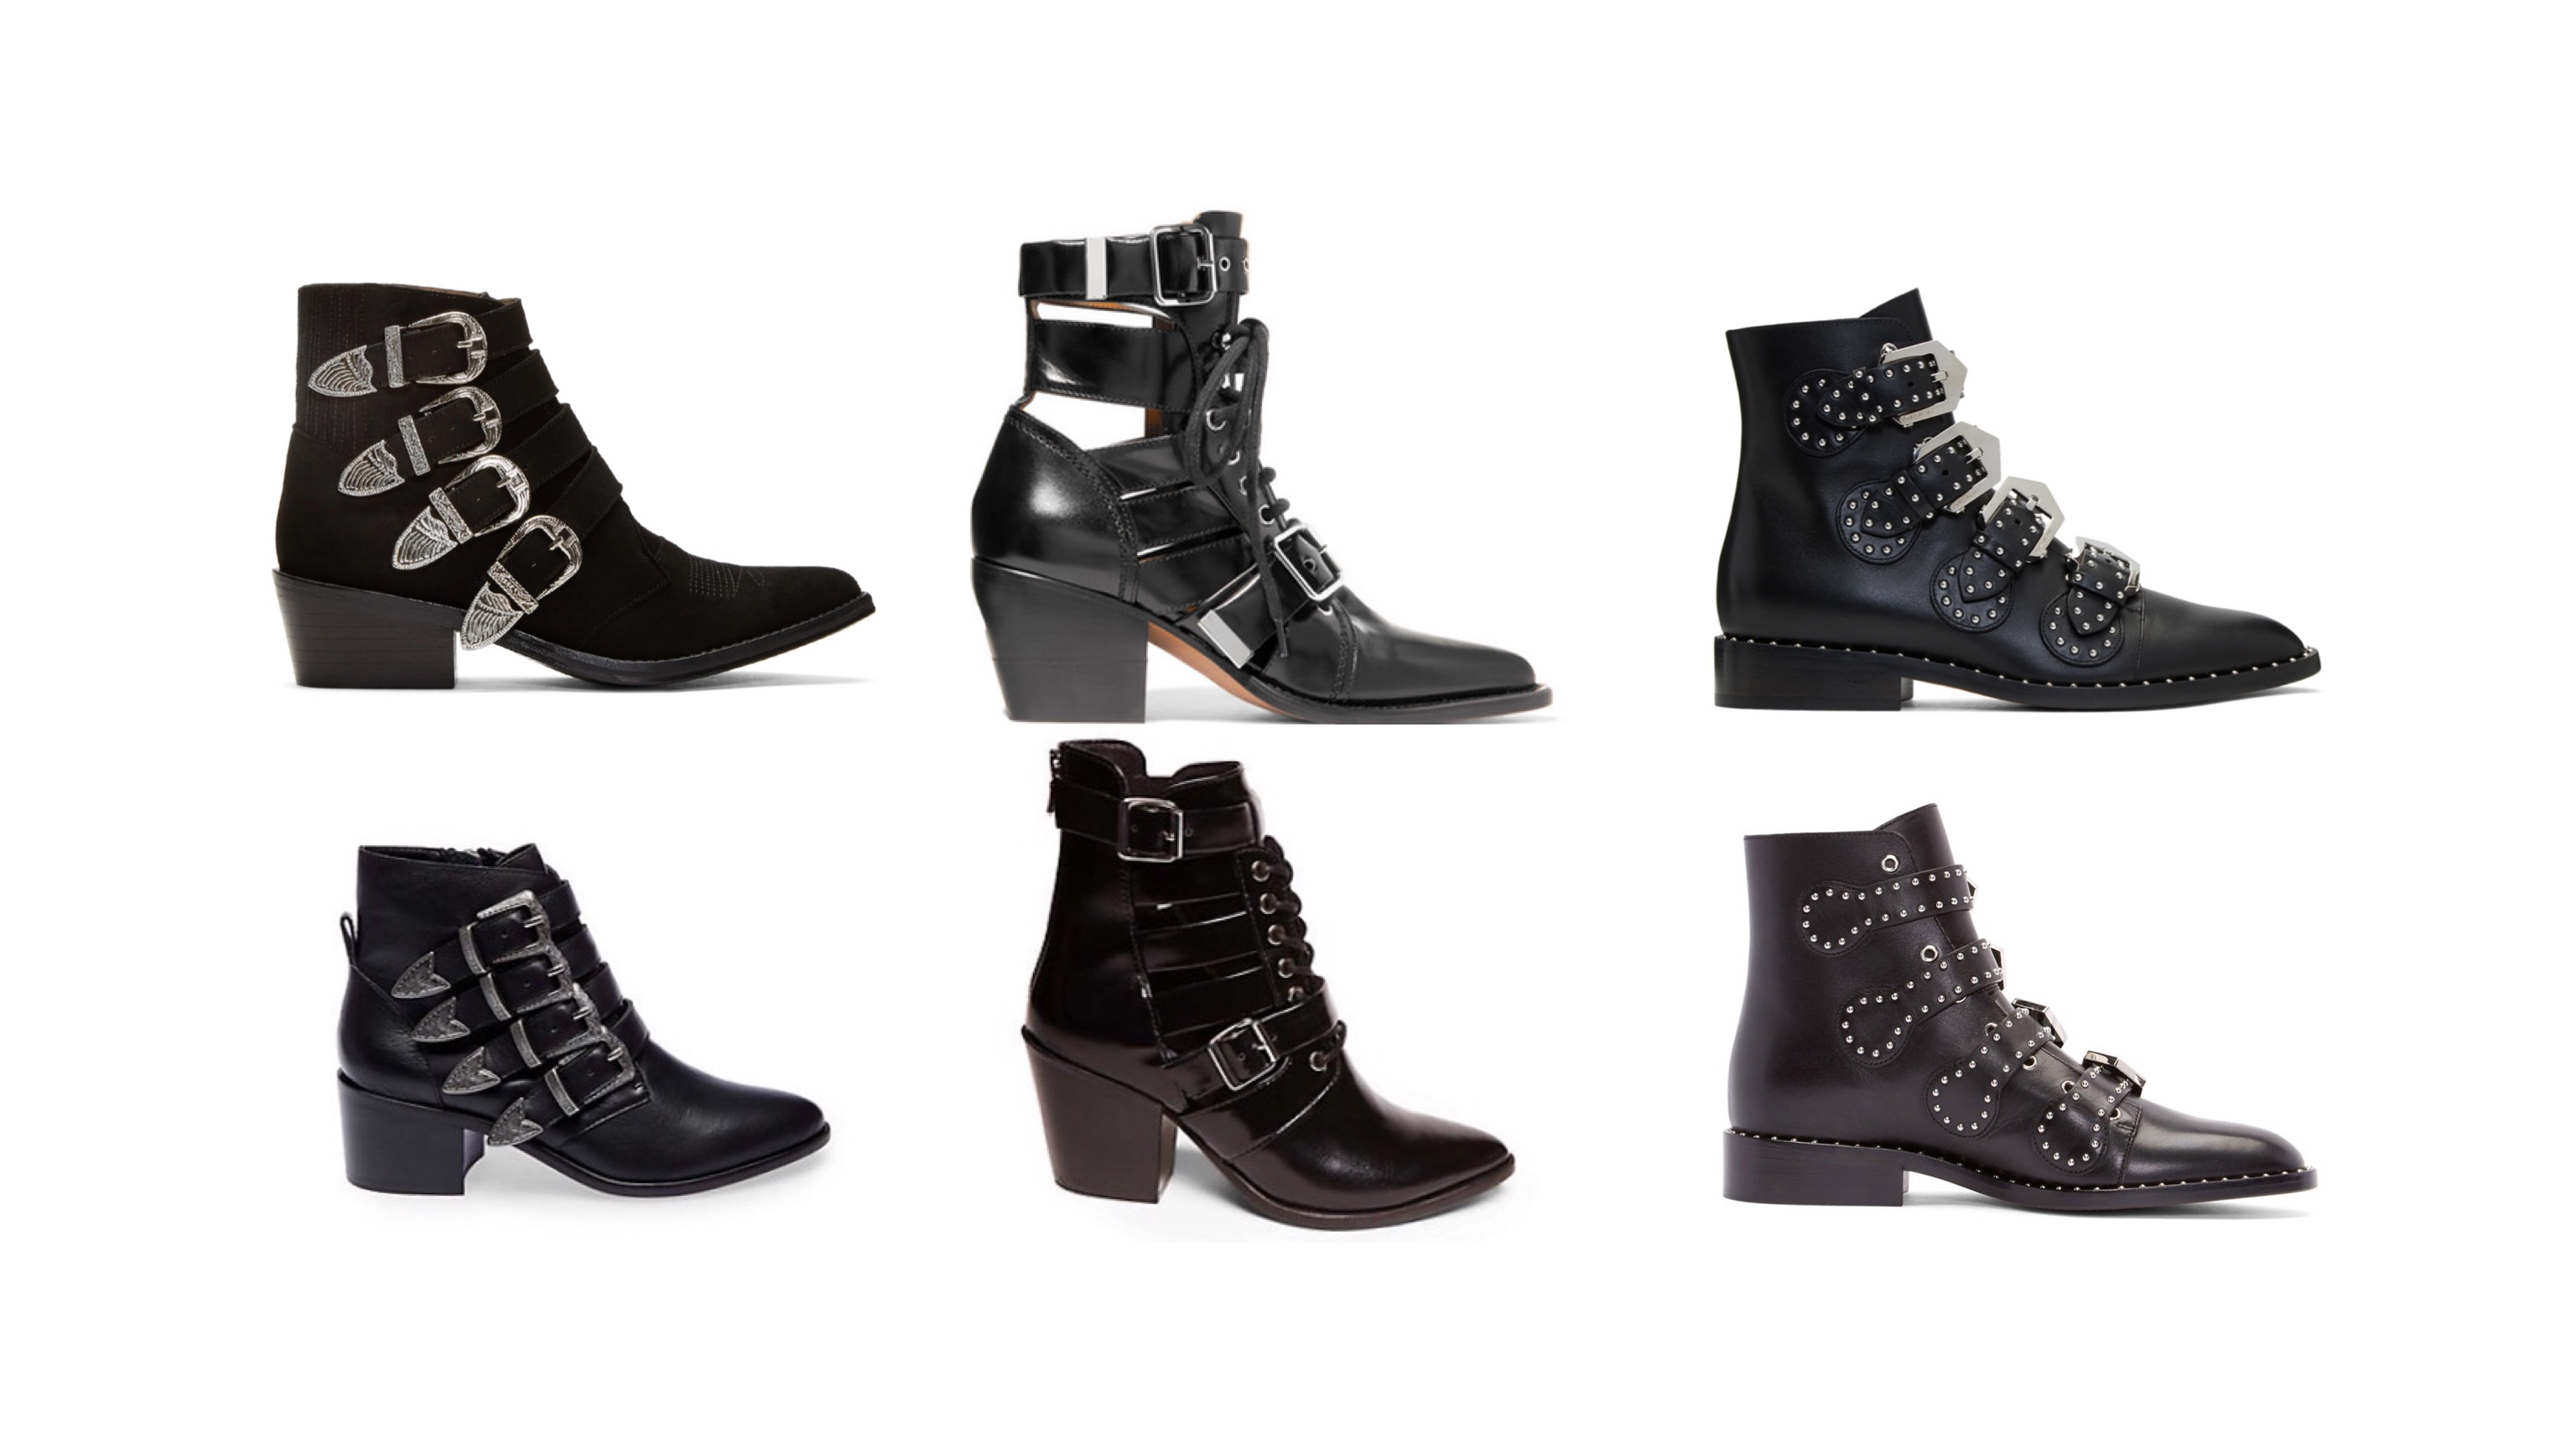 30b0038a1f8 Ankle boots are a must-have and you can score beautiful dupes of the latest